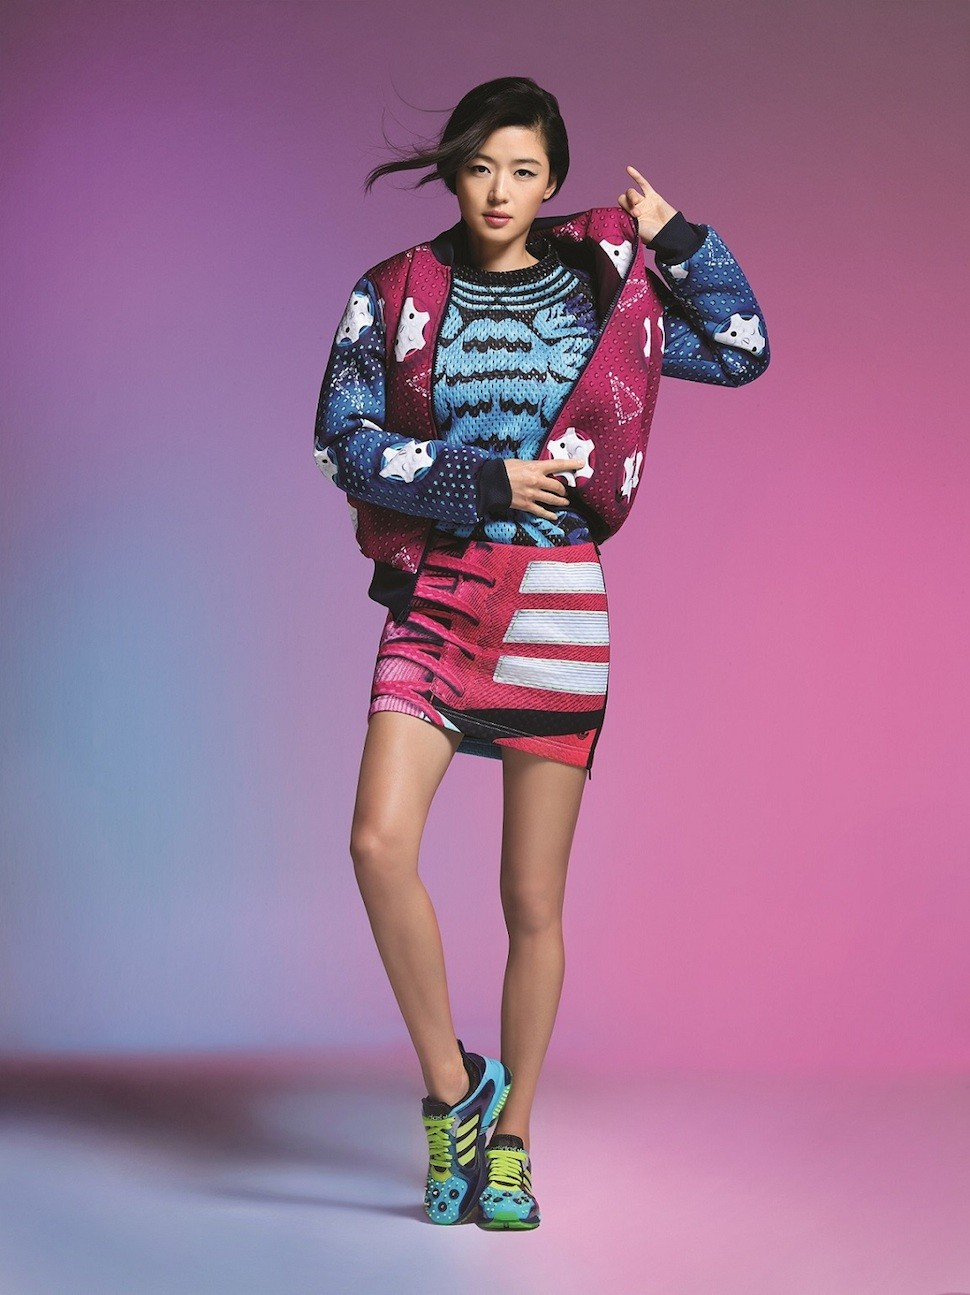 全智賢演繹adidas Originals by Mary Katrantzou系列